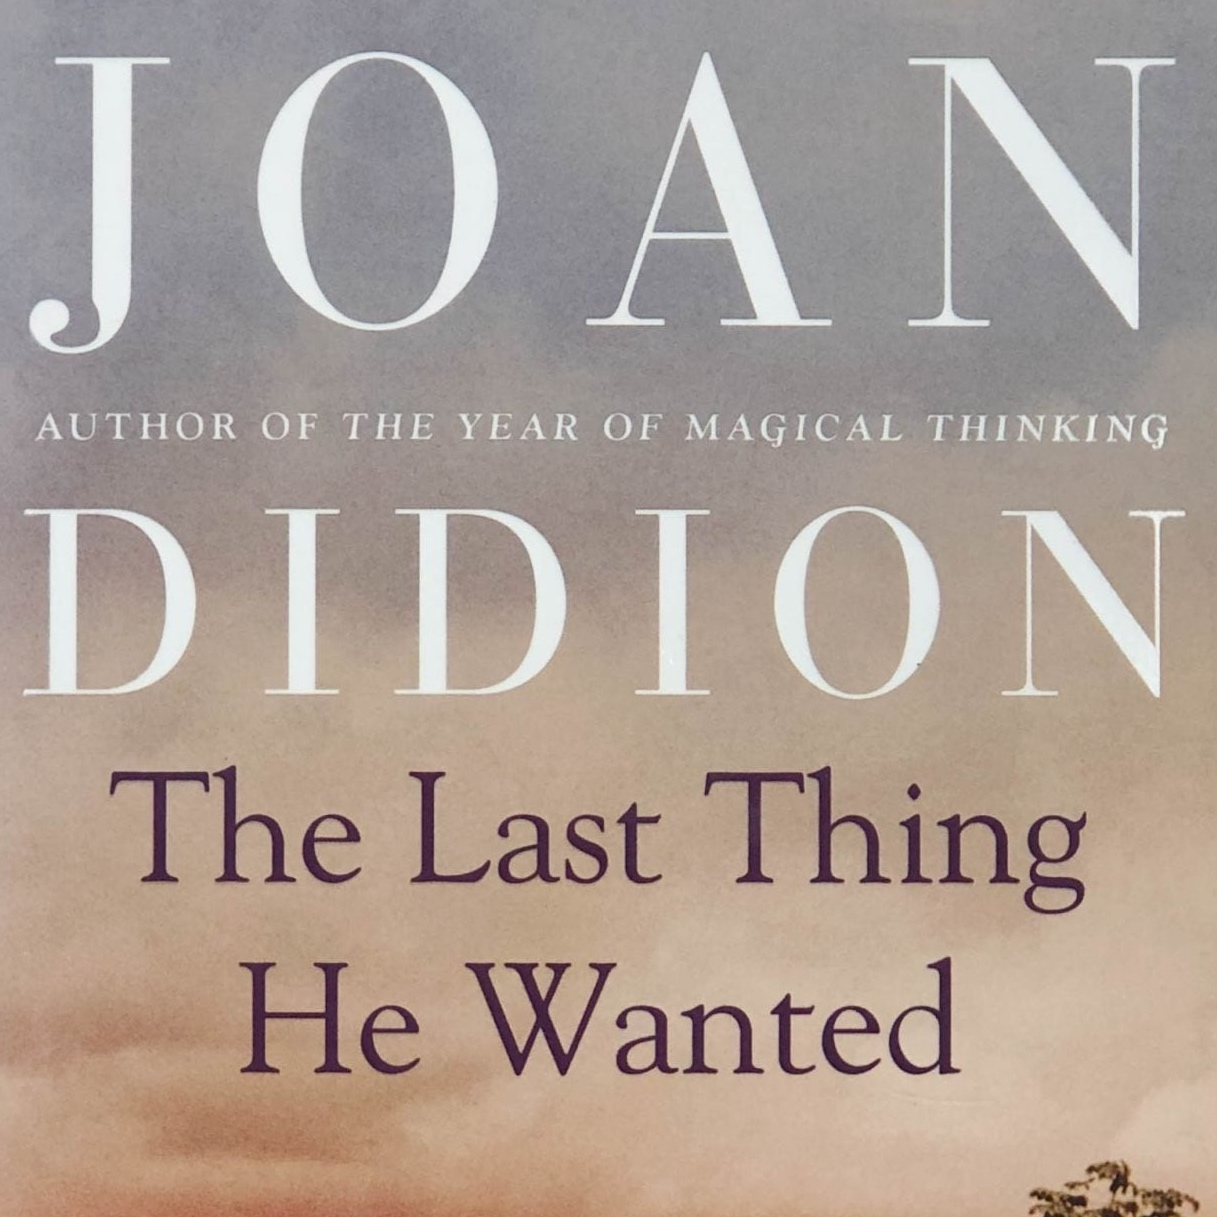 The-Last-Thing-He-Wanted-by-Joan-Didion.jpg